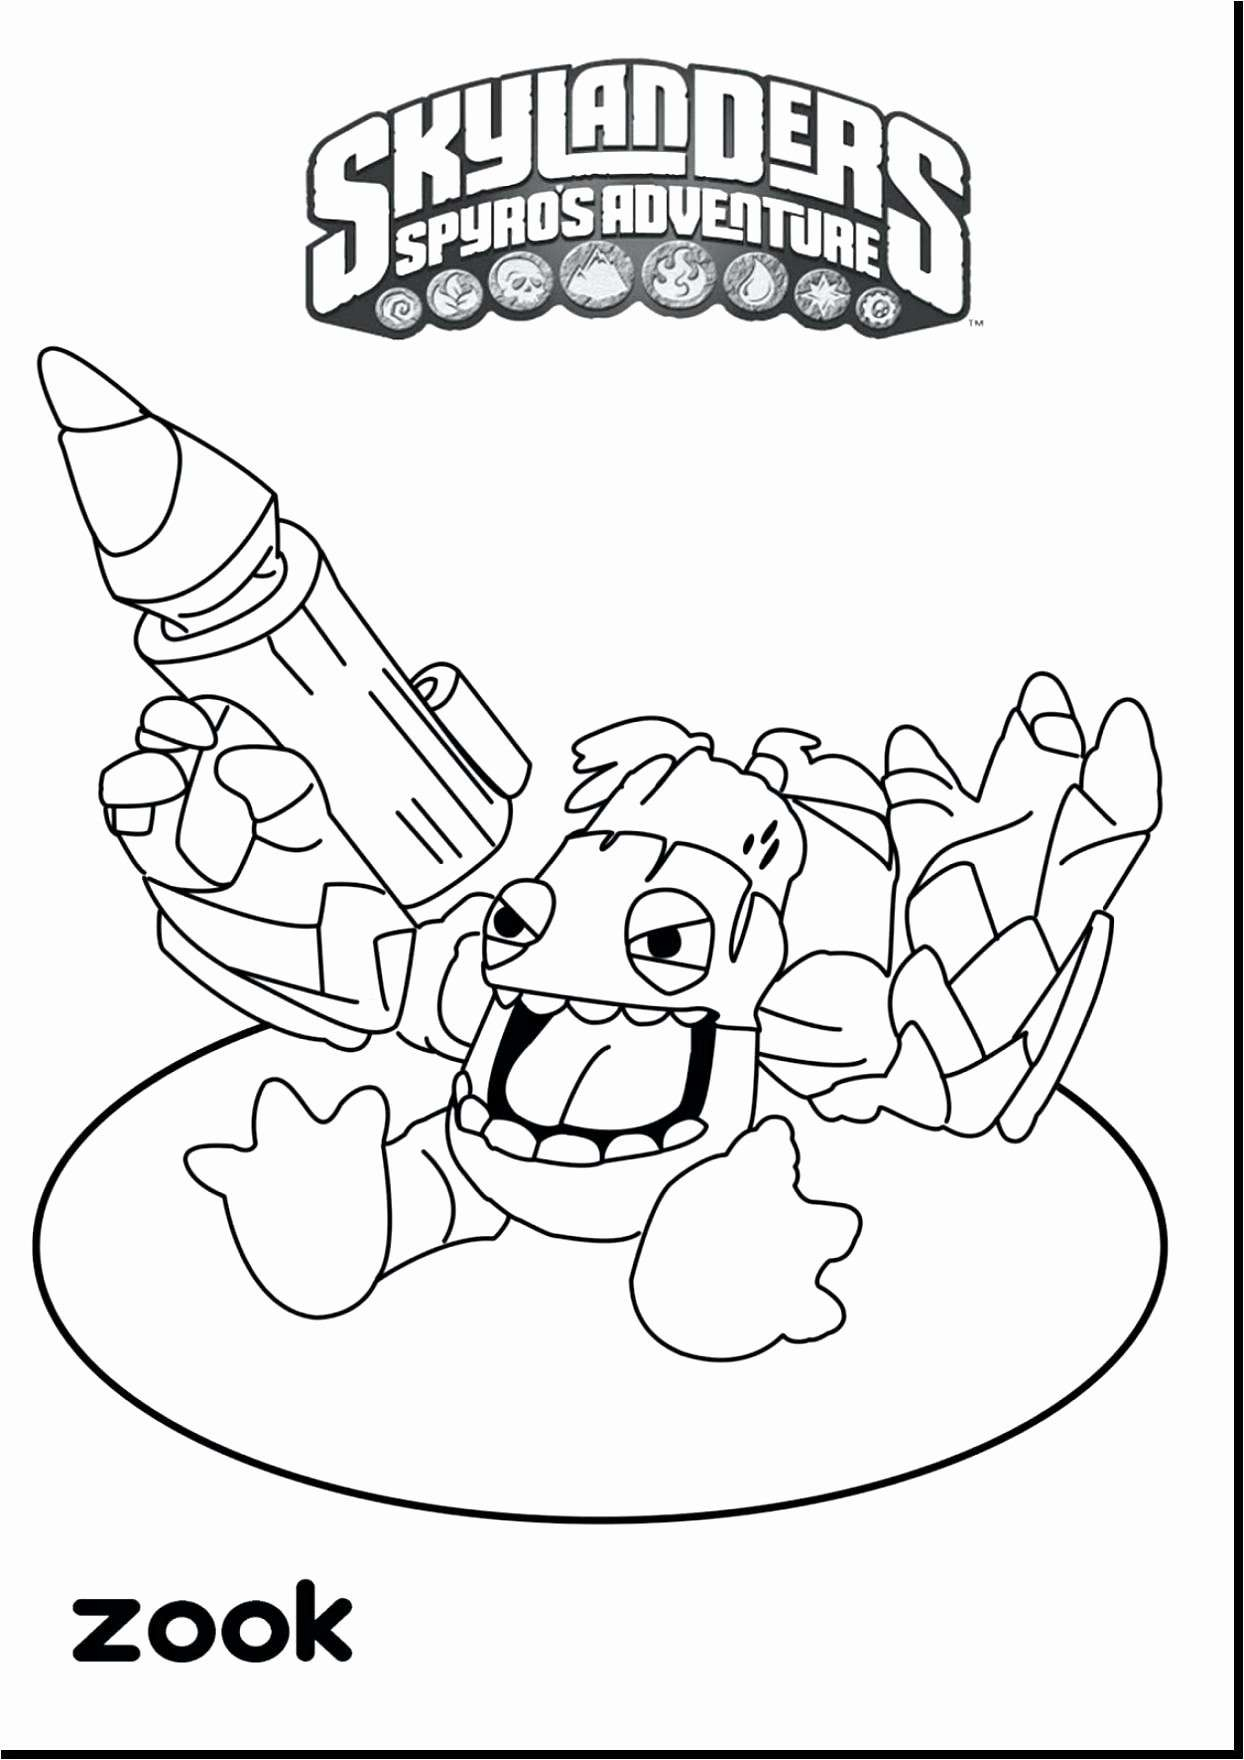 dance coloring pages Collection-Ballet Dancer Coloring Pages Free Princess Arora Coloring Pages Free Coloring Sheets 2-r